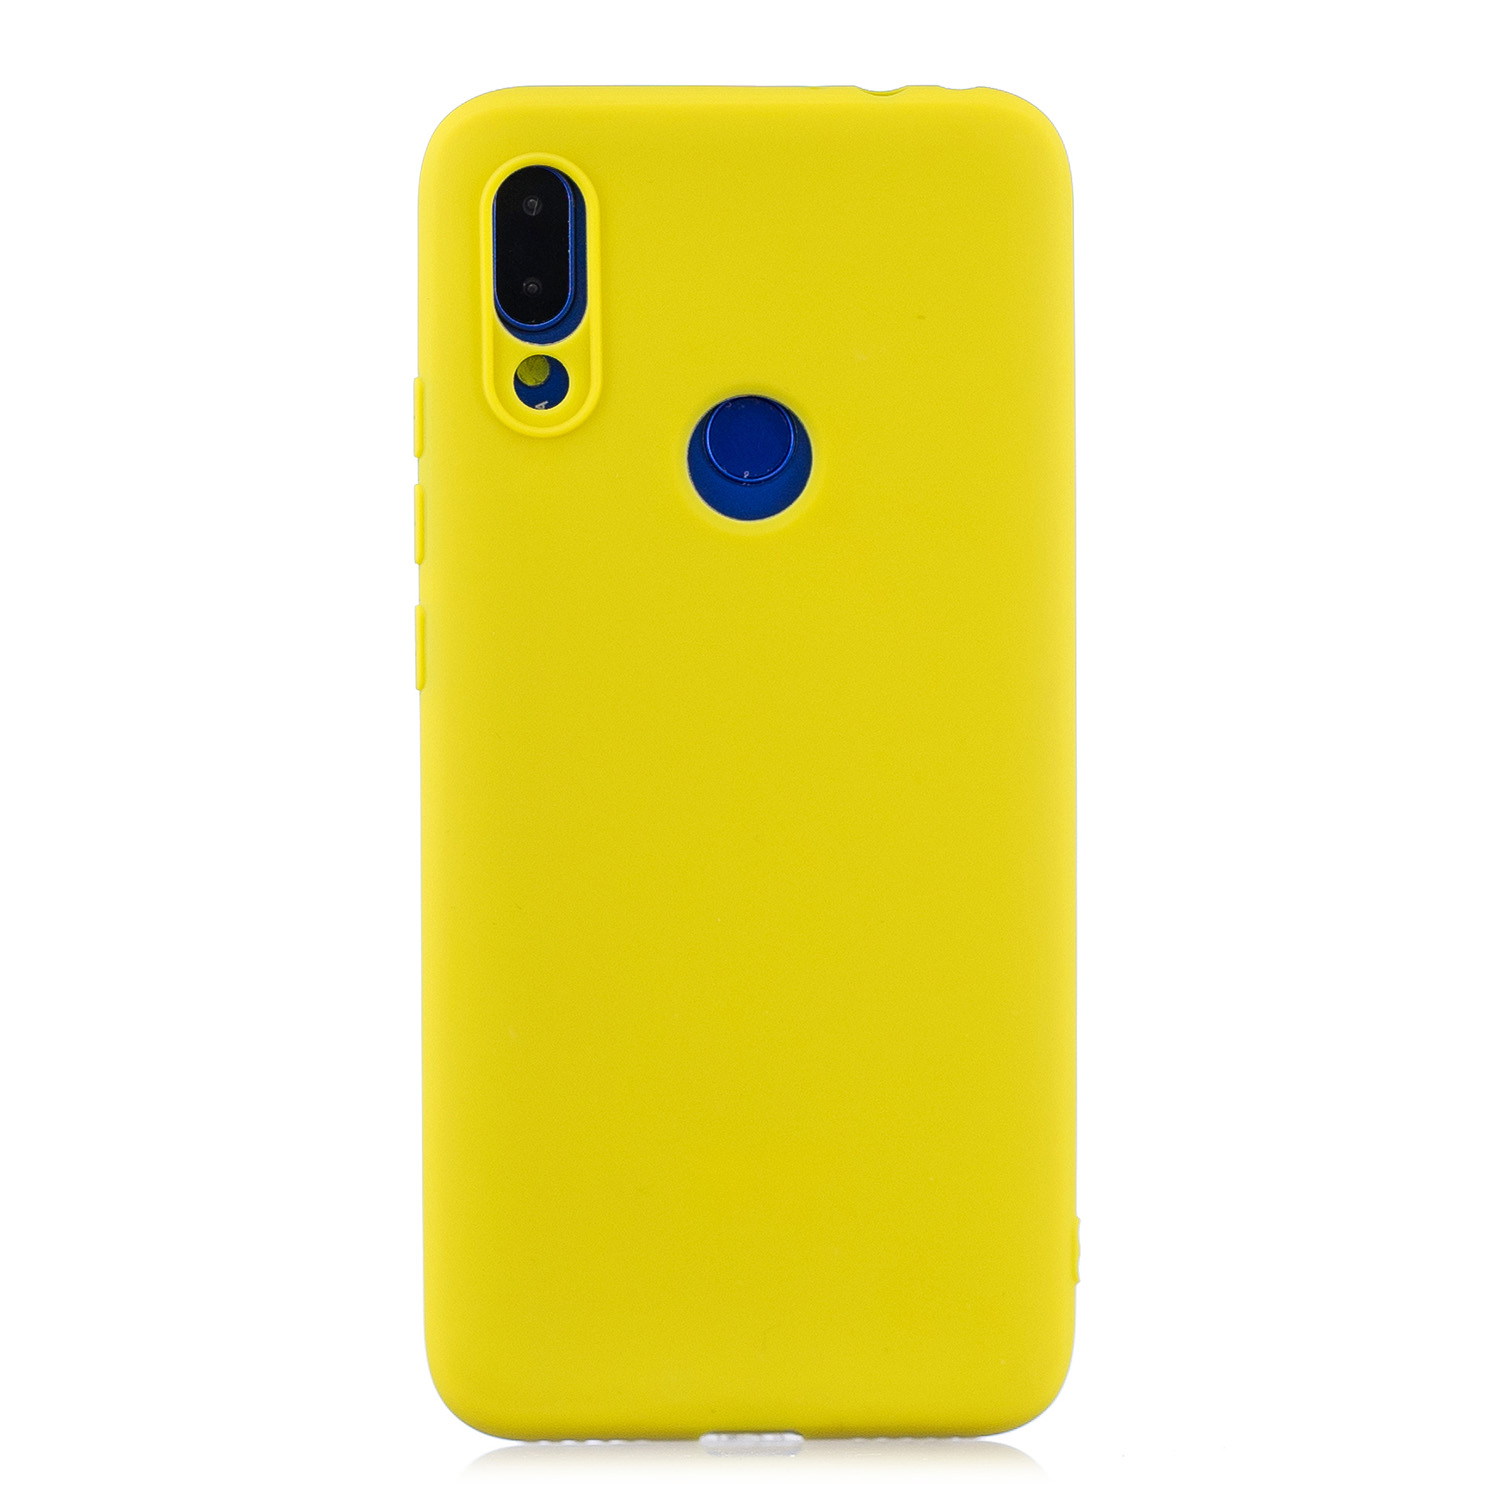 For Redmi note 7 Lovely Candy Color Matte TPU Anti-scratch Non-slip Protective Cover Back Case yellow